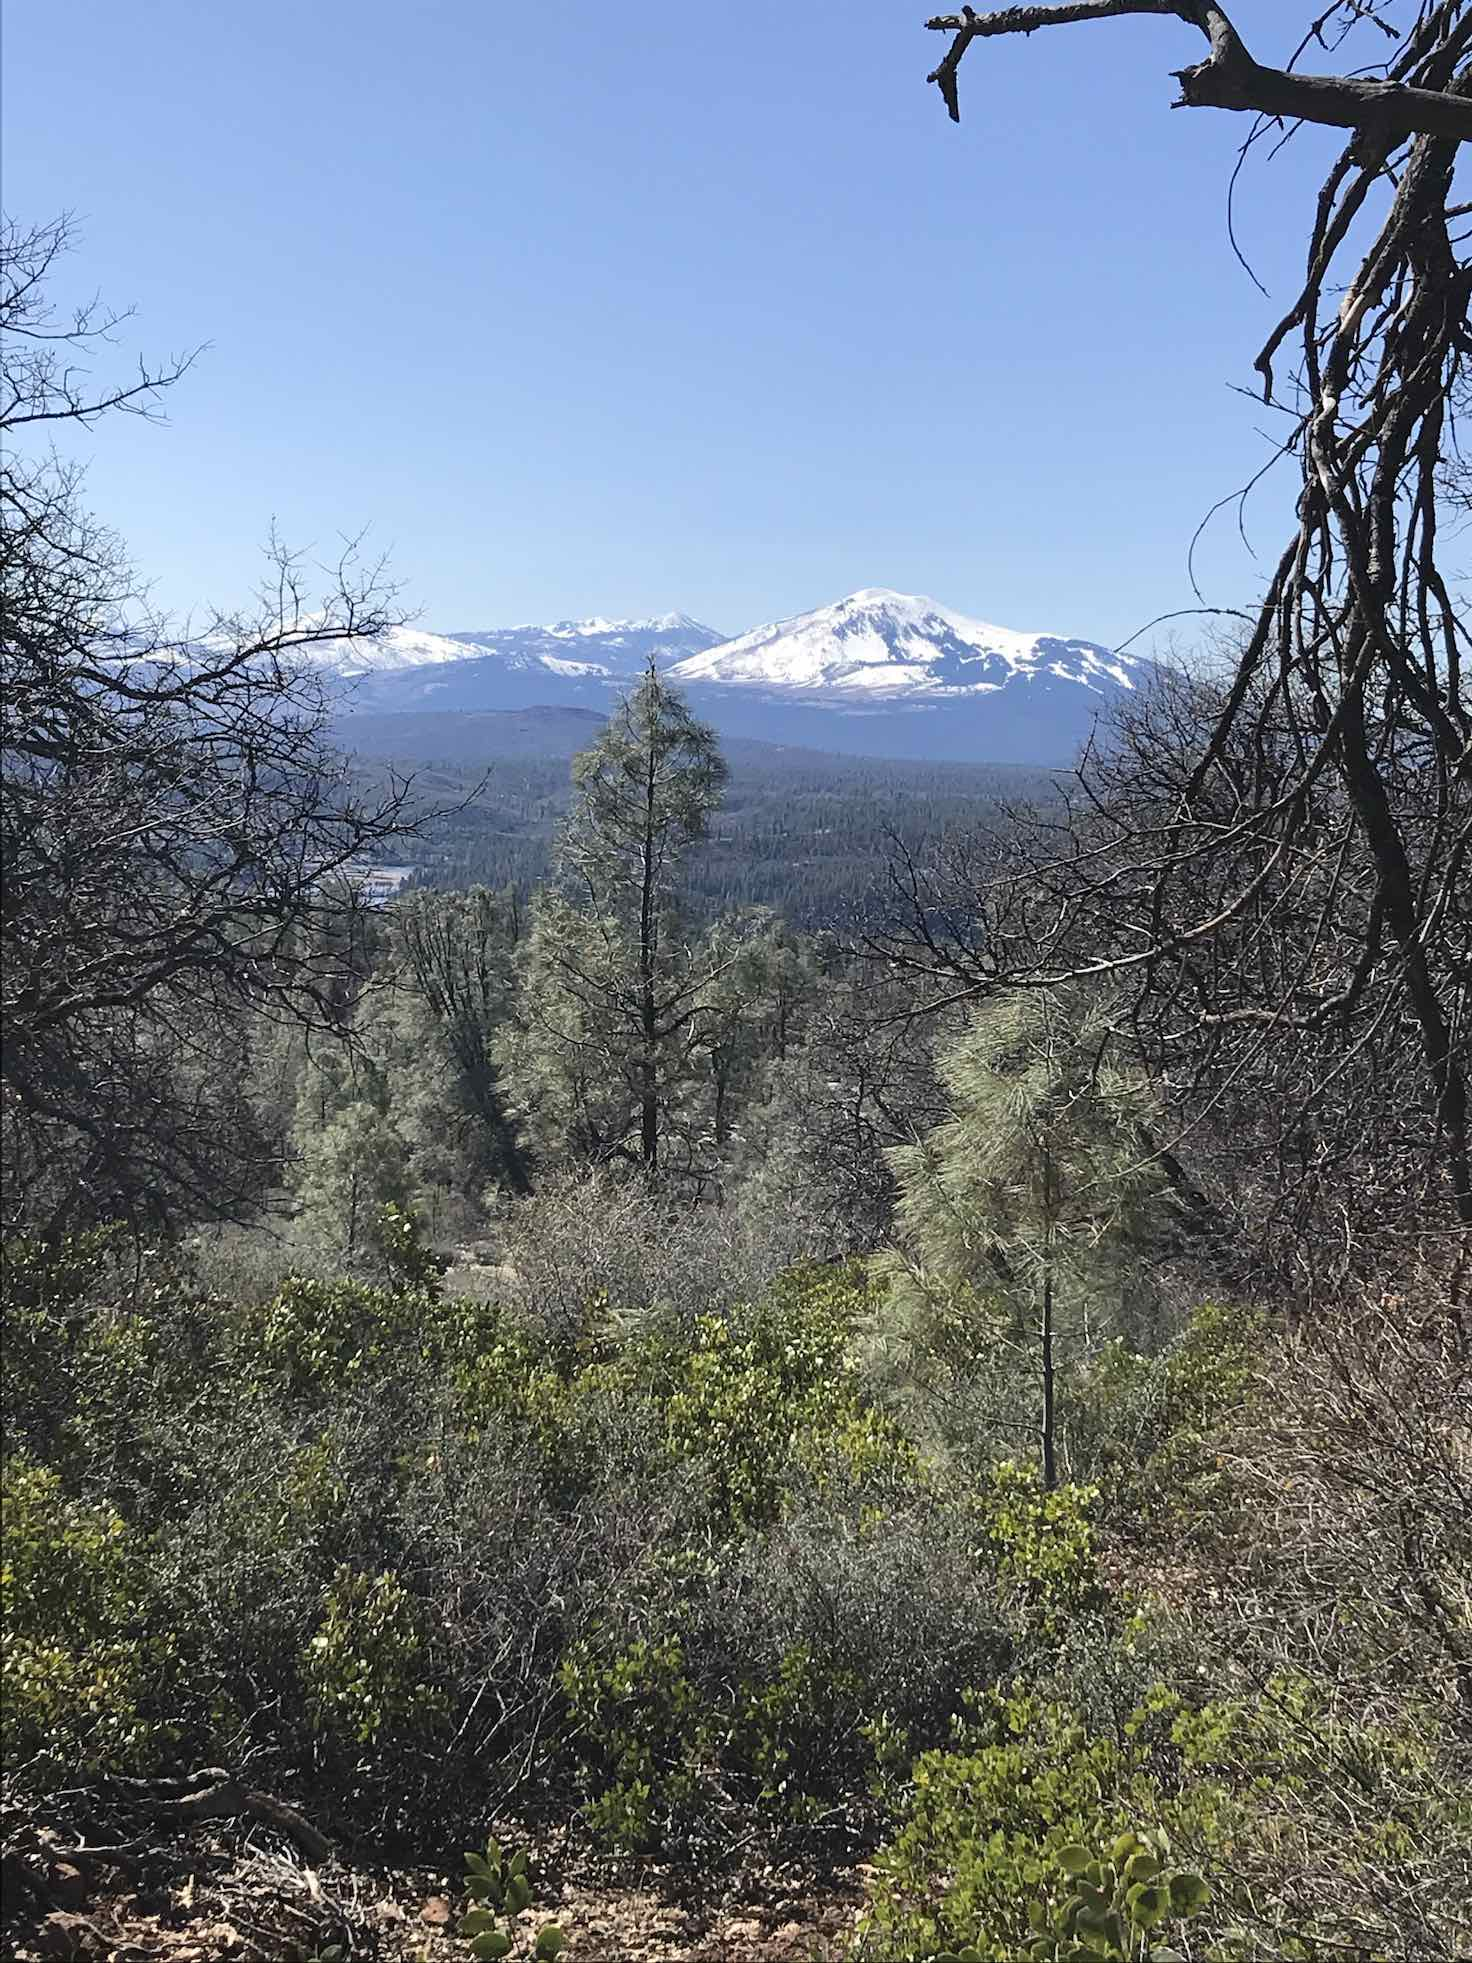 Views of Burney Mountain as descending dirt road from Soldier Mountain in Northern California.